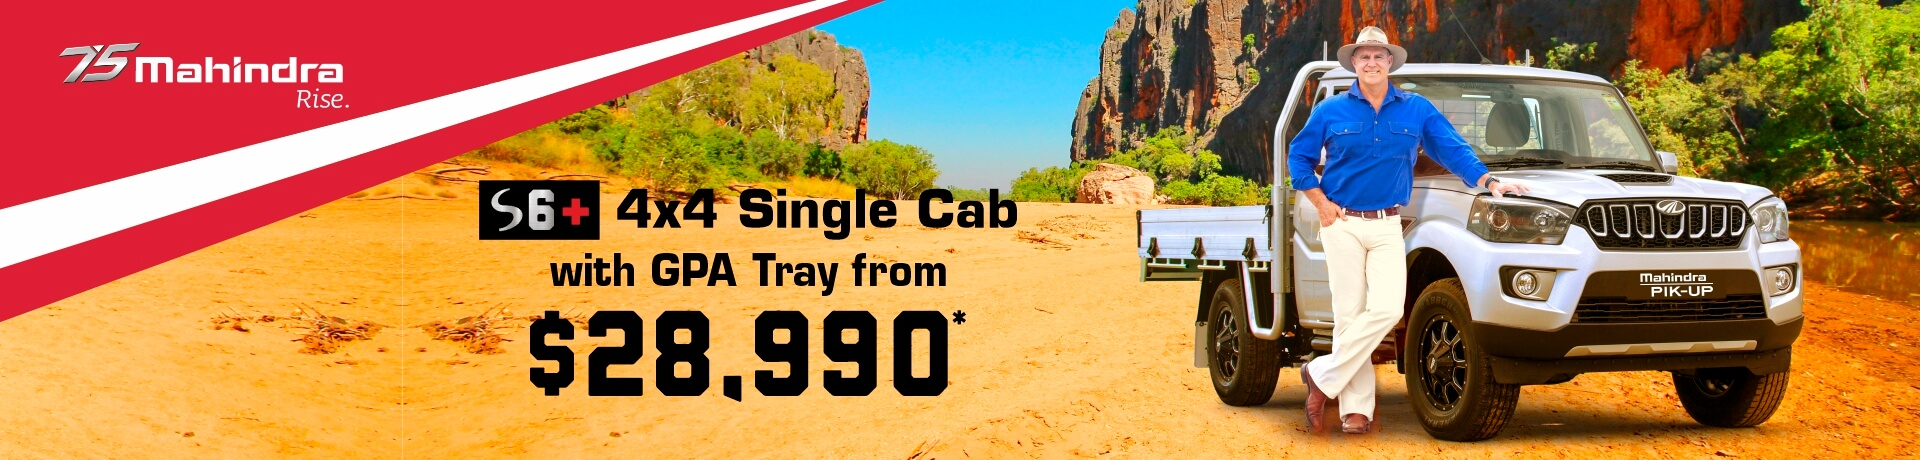 S6+ Single Cab 4x4. View all current Mahindra Offers.